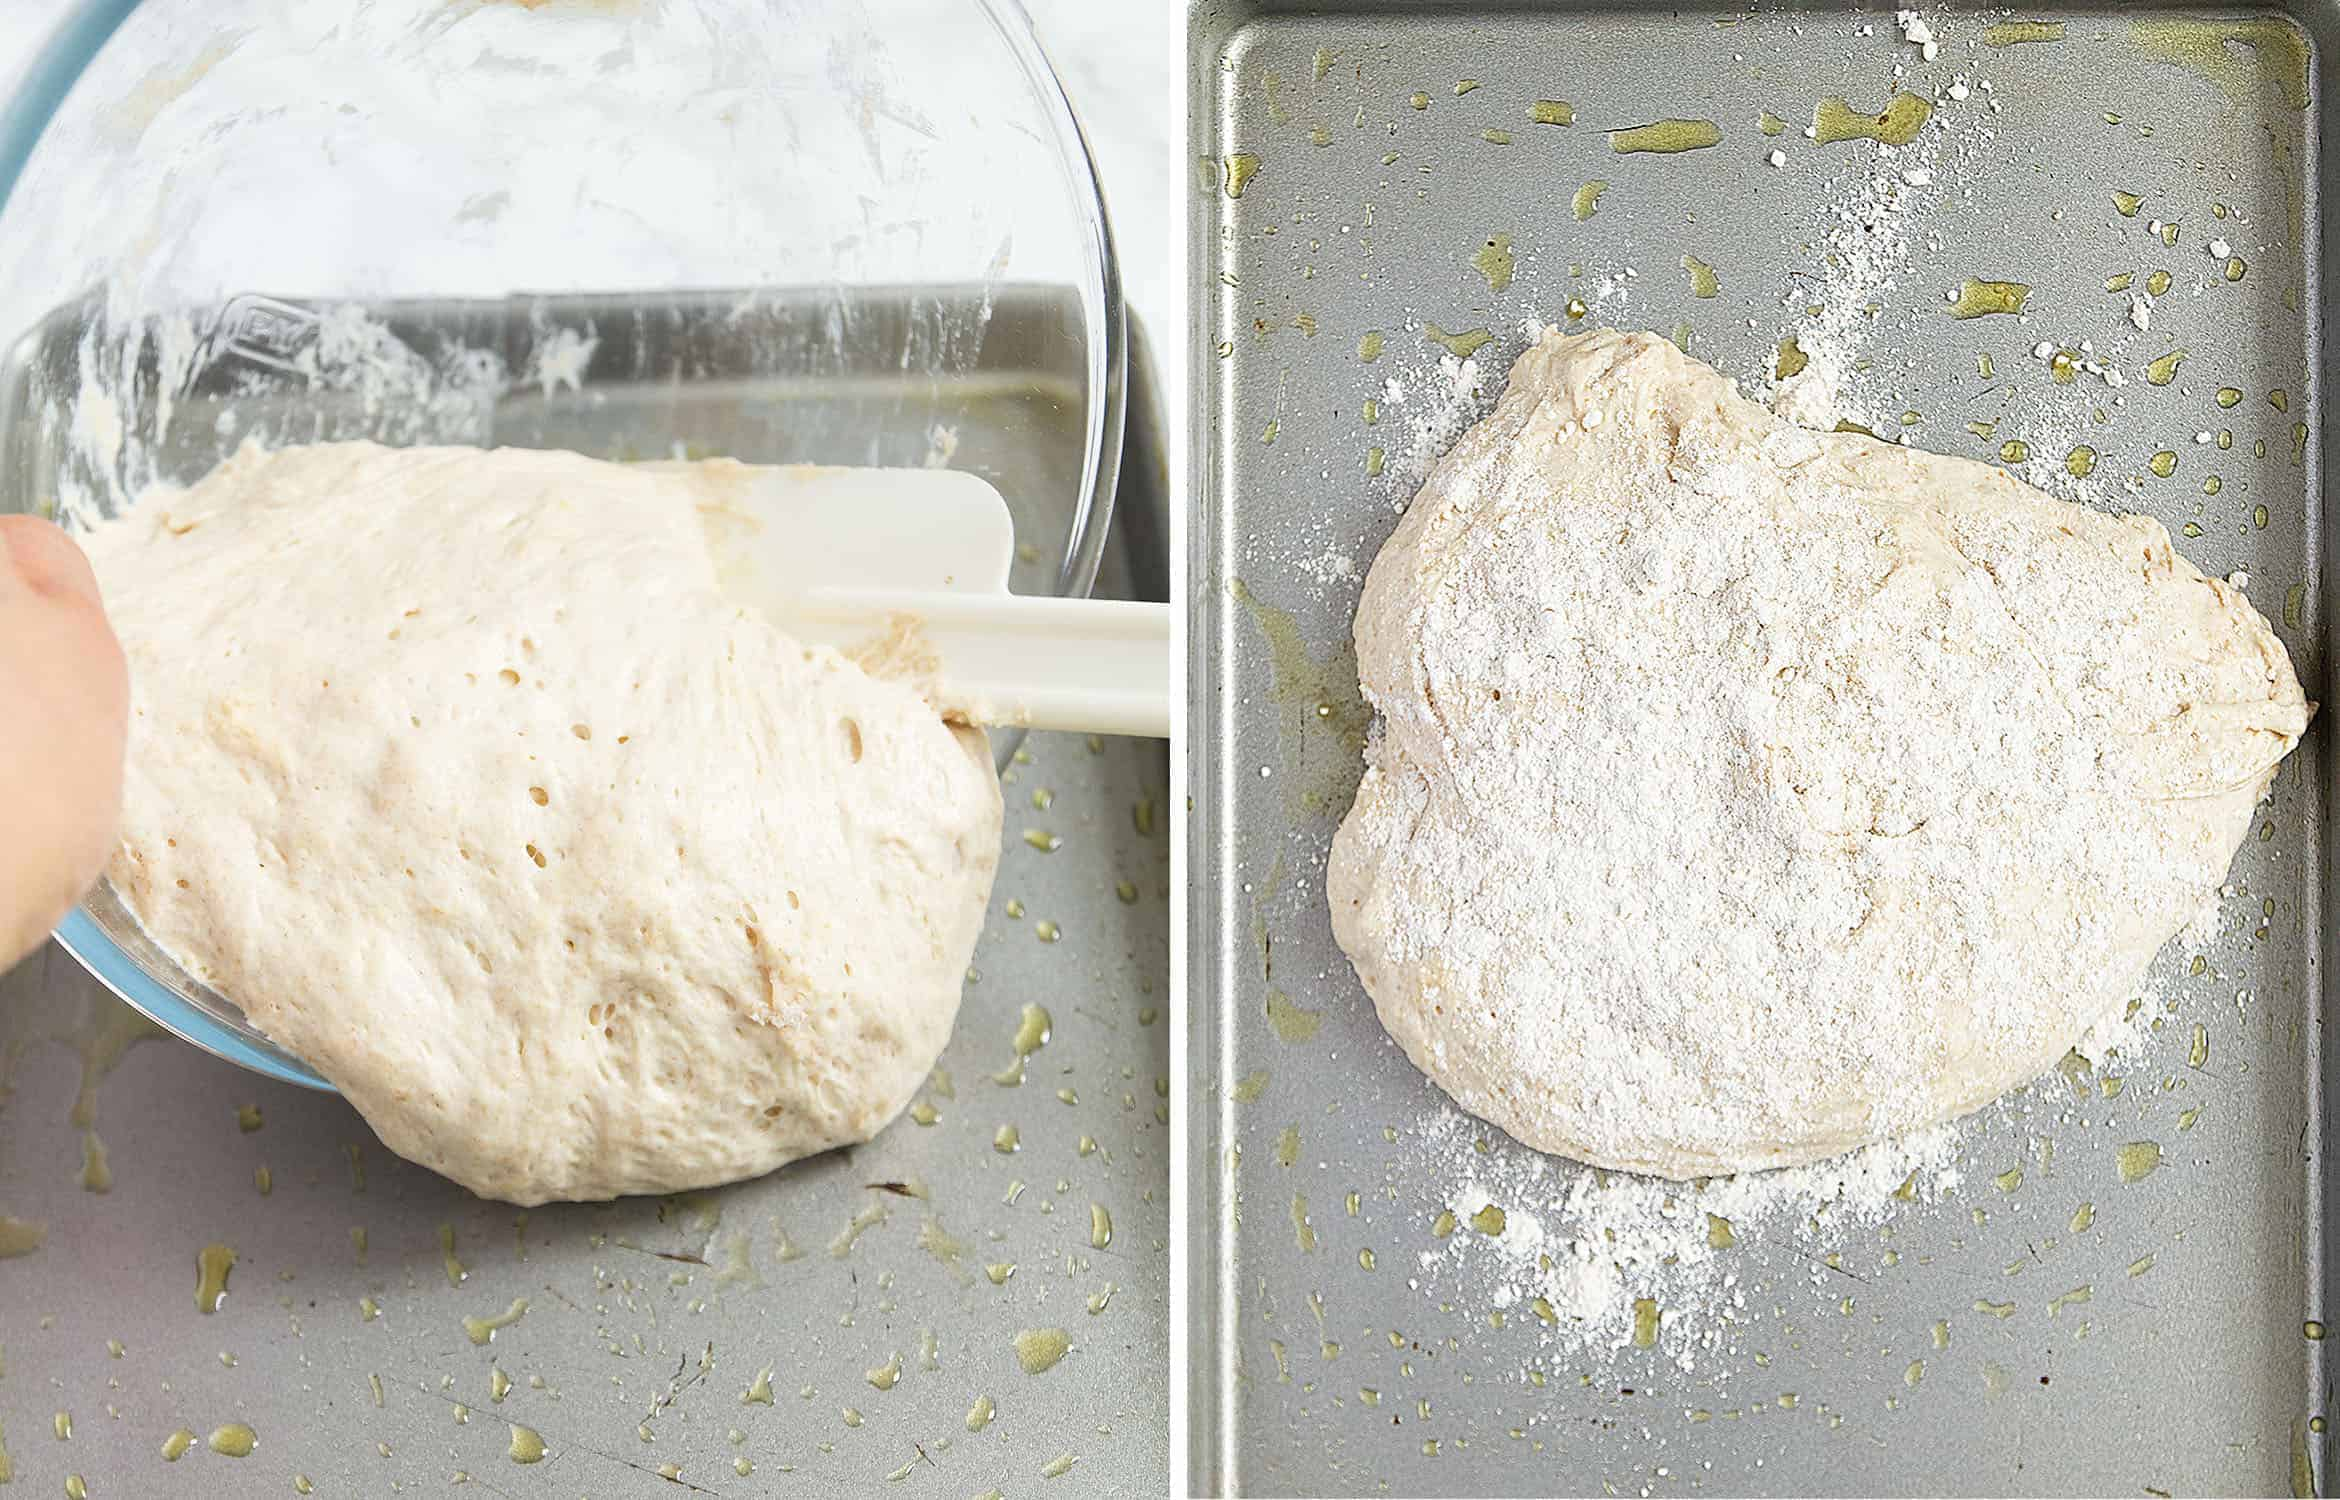 The dough is poured on a baking tray and dusted with flour.